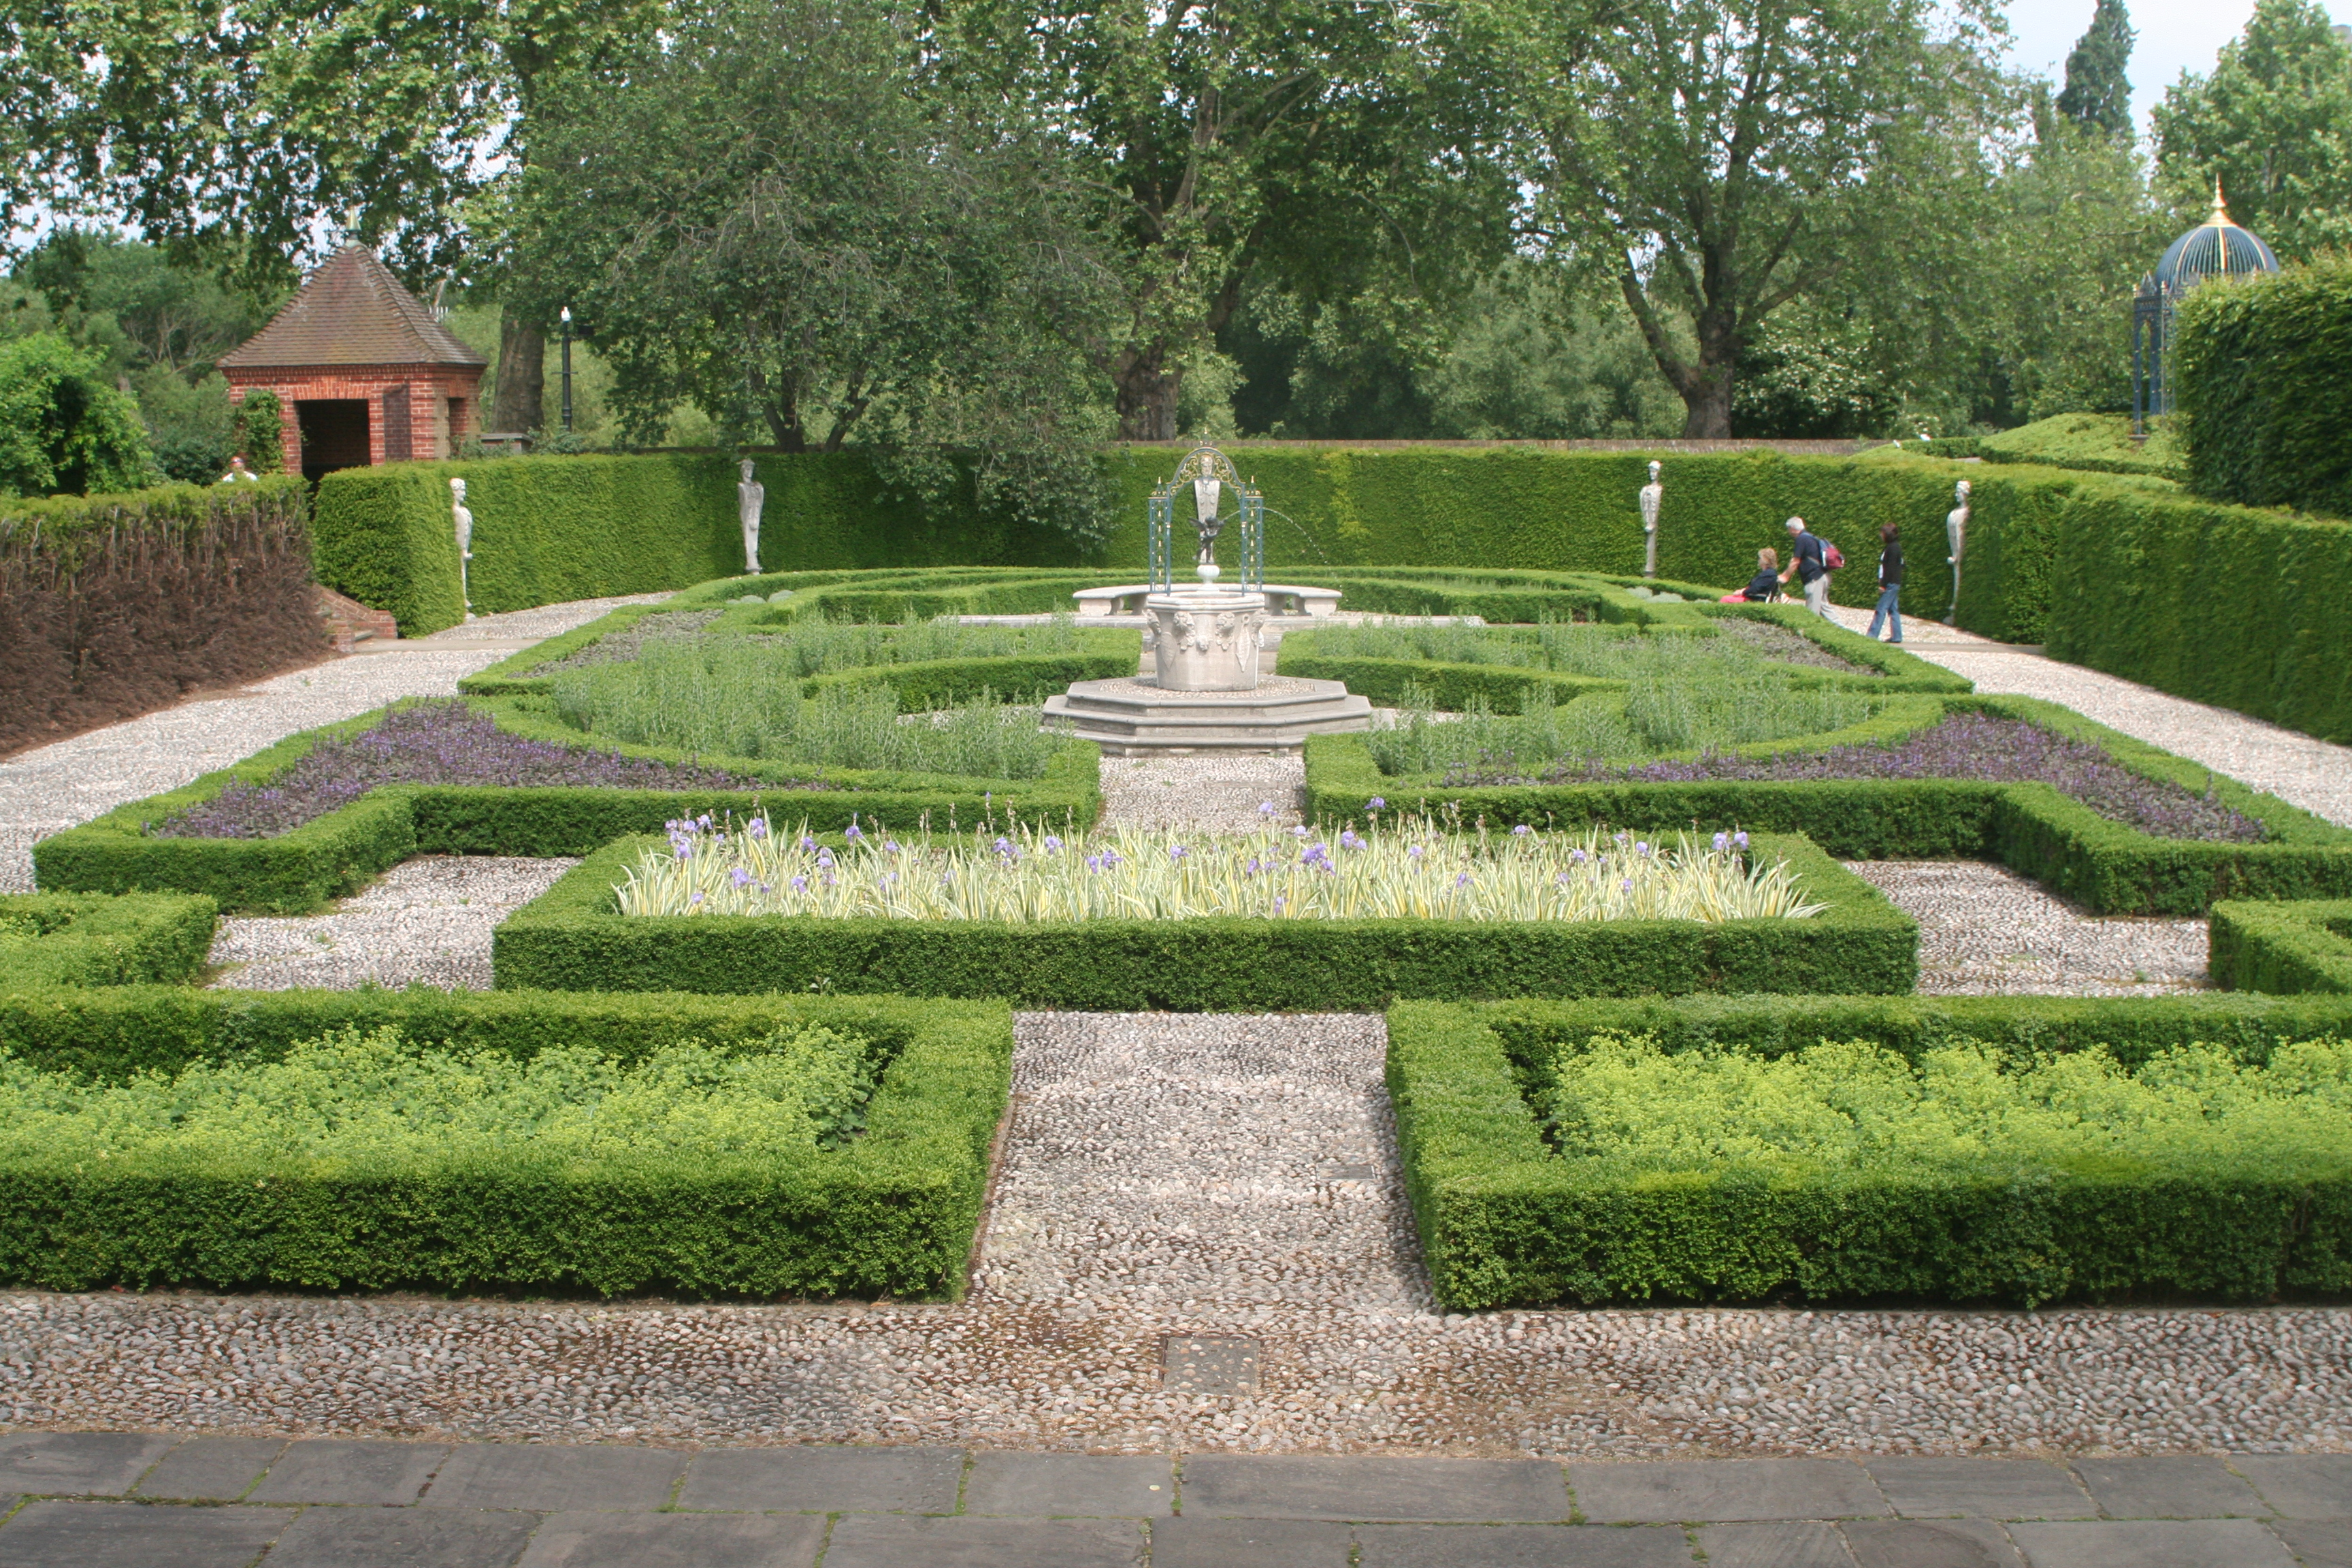 File:Part of formal gardens Kew Palace.JPG - Wikimedia Commons